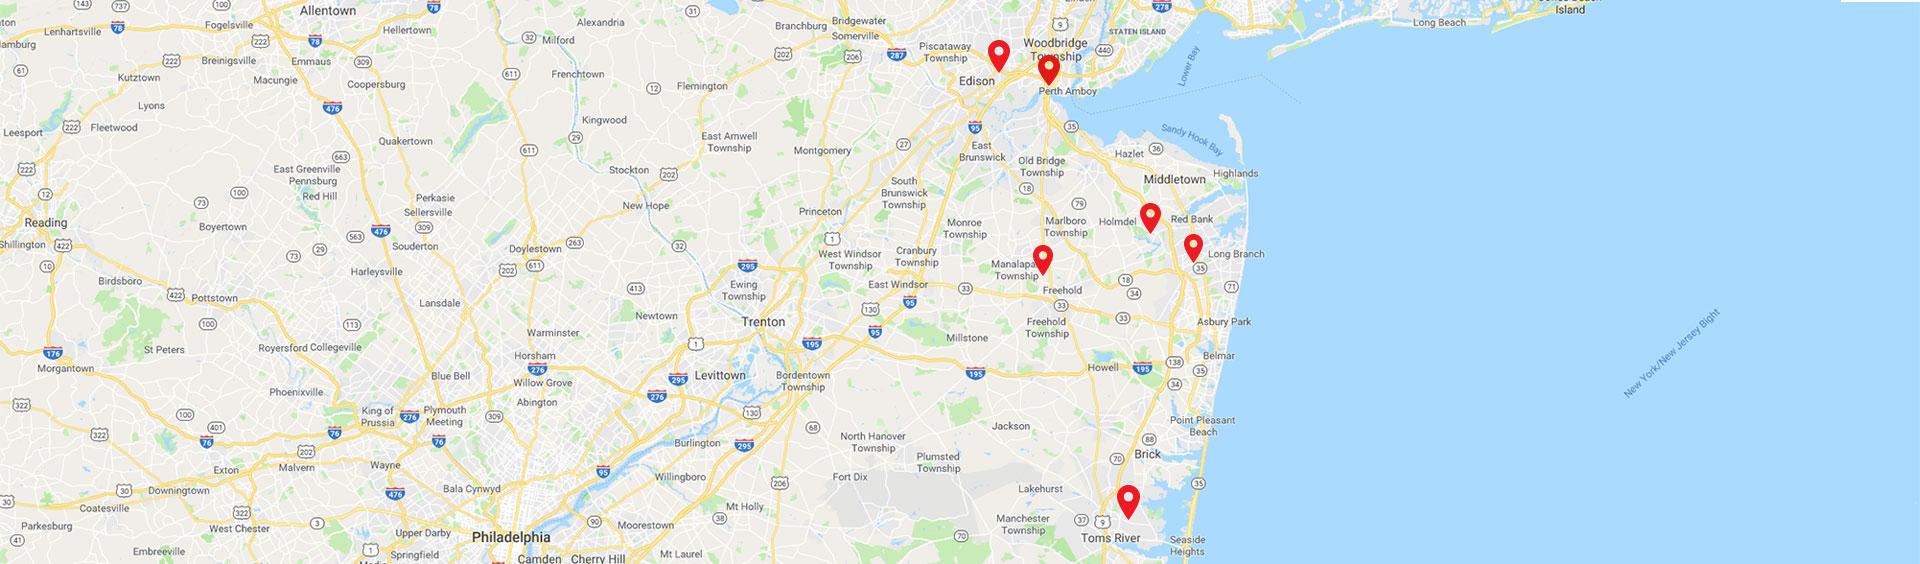 Builders Supply Locations